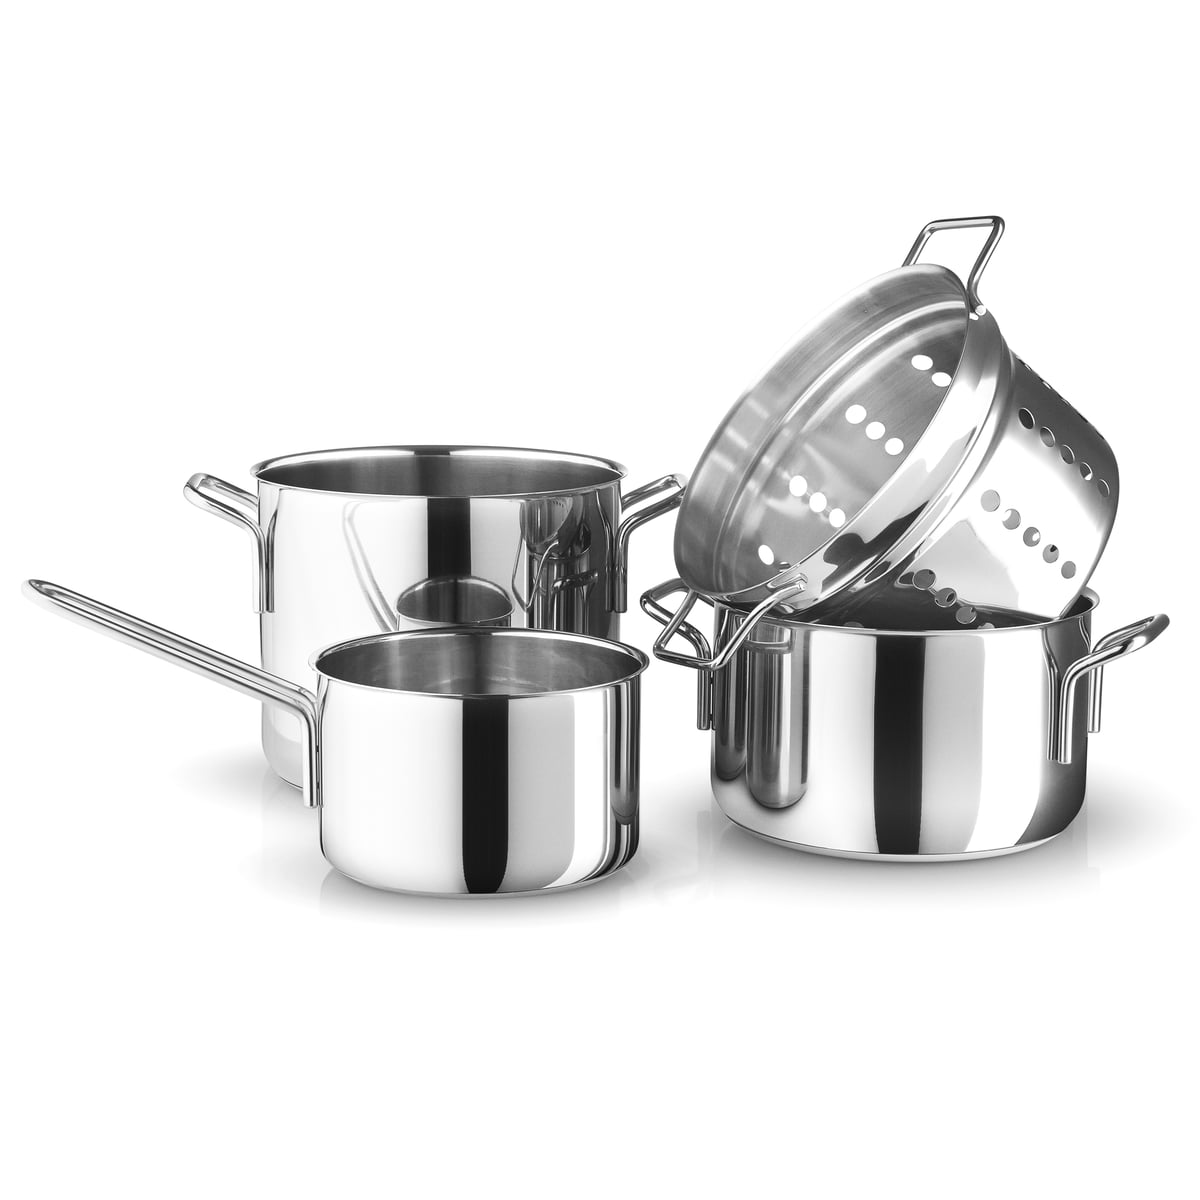 Stainless Steel Pot Set By Eva Trio